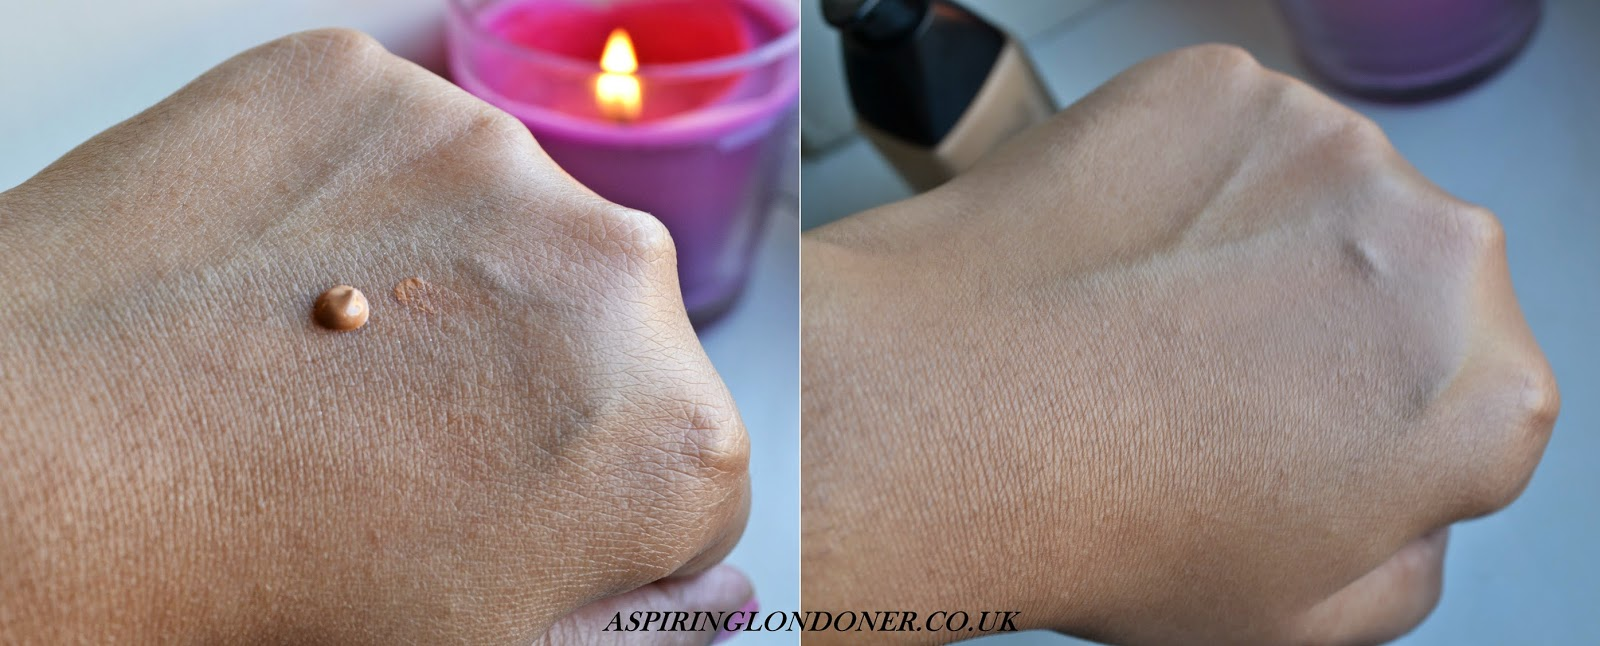 Sleek MakeUp Bare Skin Foundation Review & Swatch - Aspiring Londoner